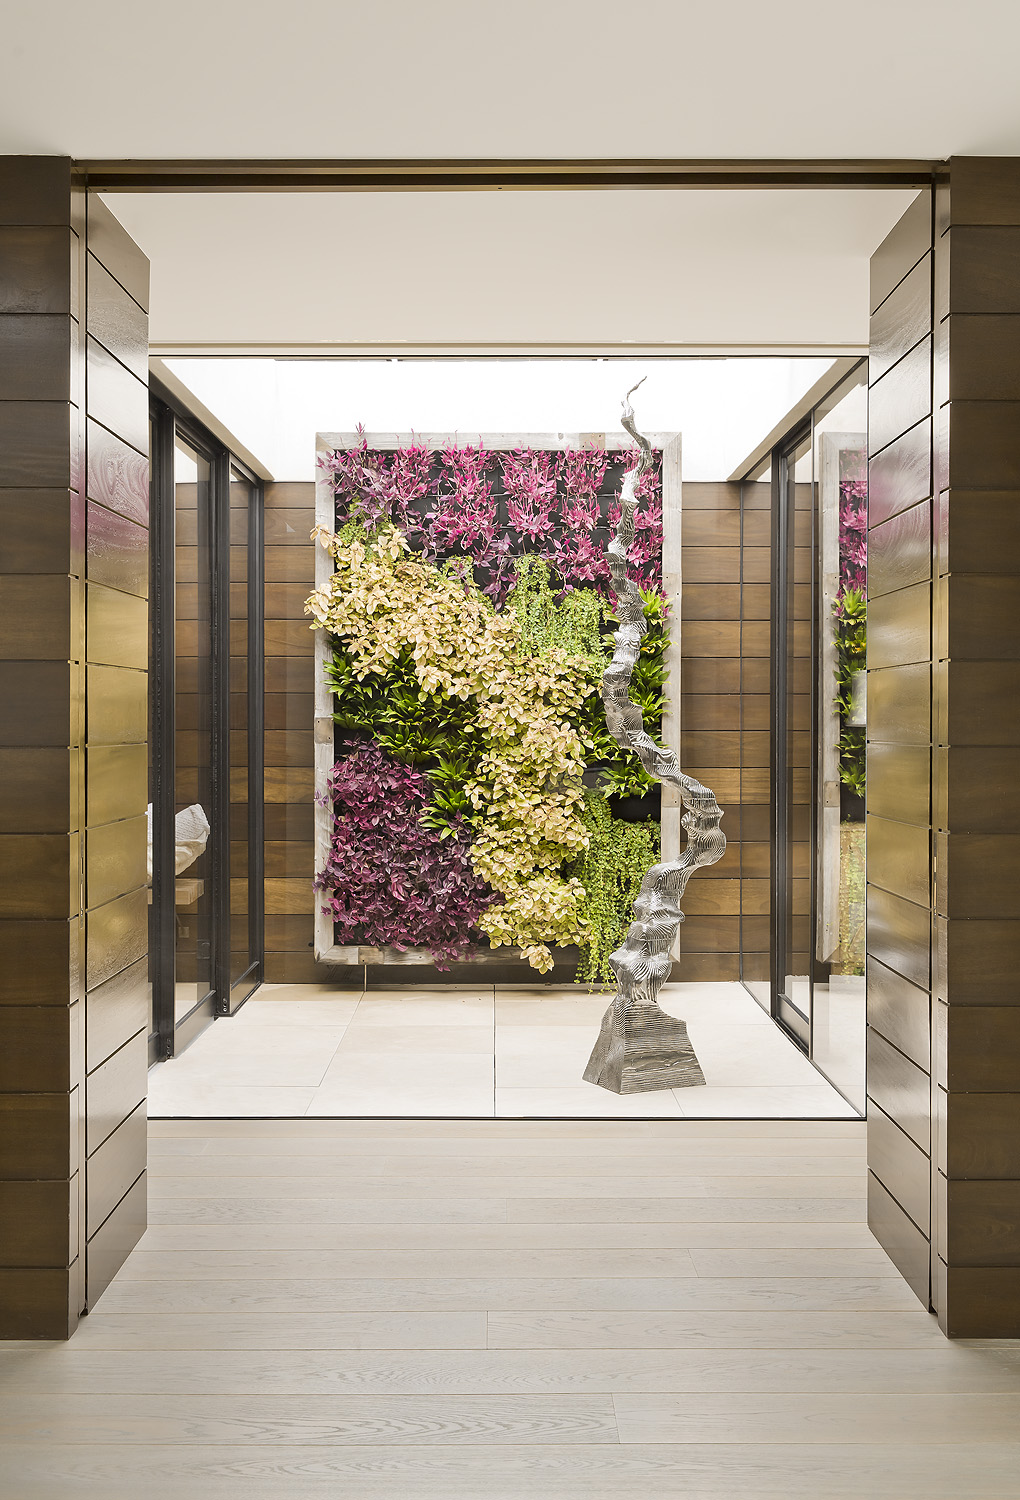 "All About Plant-Life   Bars and restaurants often boast beautiful displays of greenery or flowers, whether it's with a living wall or faux greenery along the ceiling. In this Miami Beach residence, a living wall brings life into a residential entryway. ""Instagrammable spaces often need texture, and green walls serve as the perfect background,"" says May Sung, founder of SUBU Design Architecture.  Created using the Japanese concept of Tsuboniwa (or a small, enclosed garden), ""the green wall creates a connection with the outdoors. It sets a background and frames the composition for the space,"" says Sung."